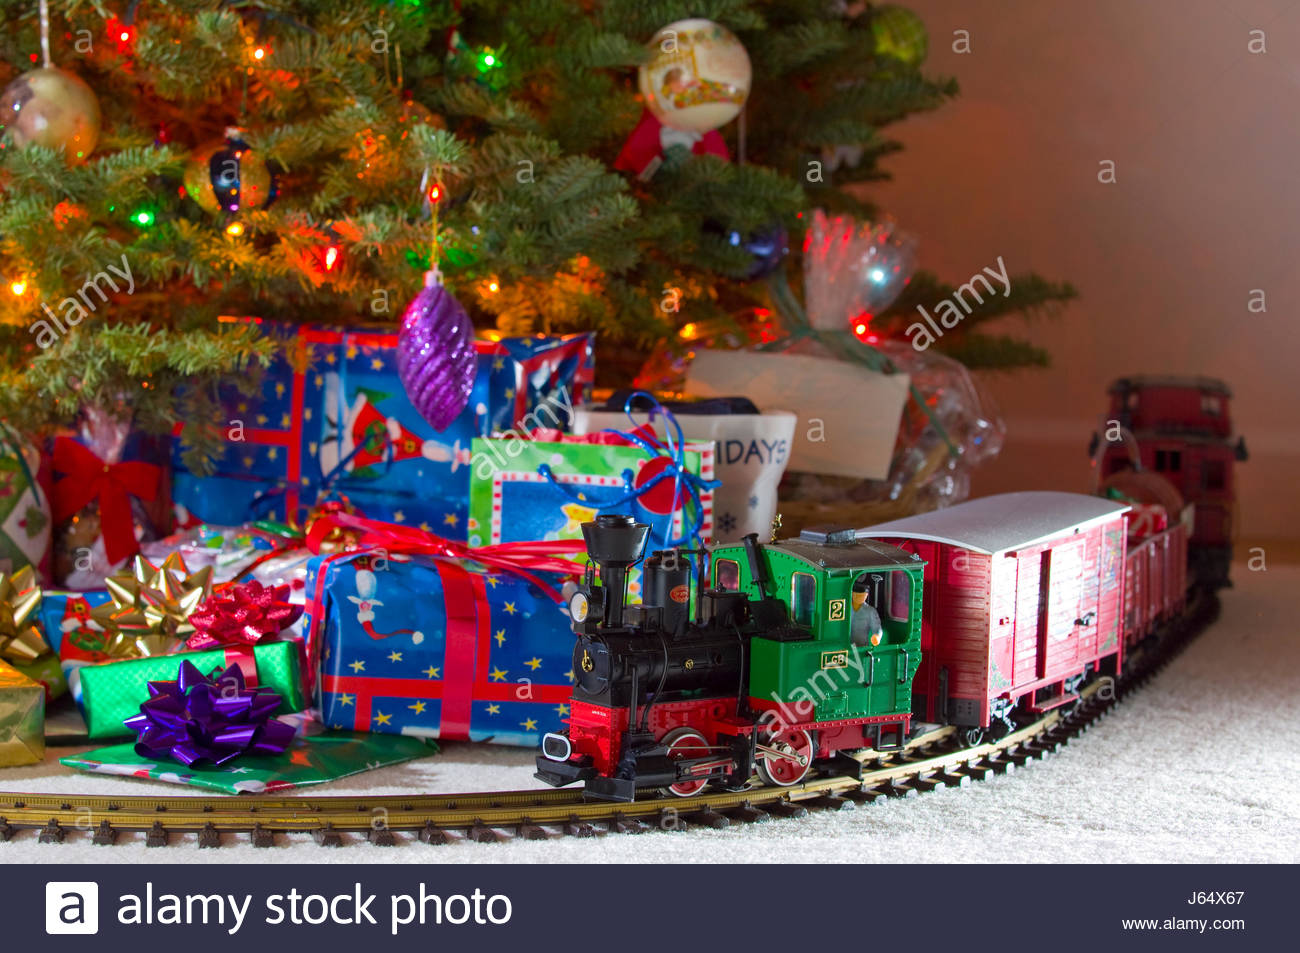 Toy electronic train on track in front of decorated Christmas tree with many wrapped presents piled beneath it. Stock Photo